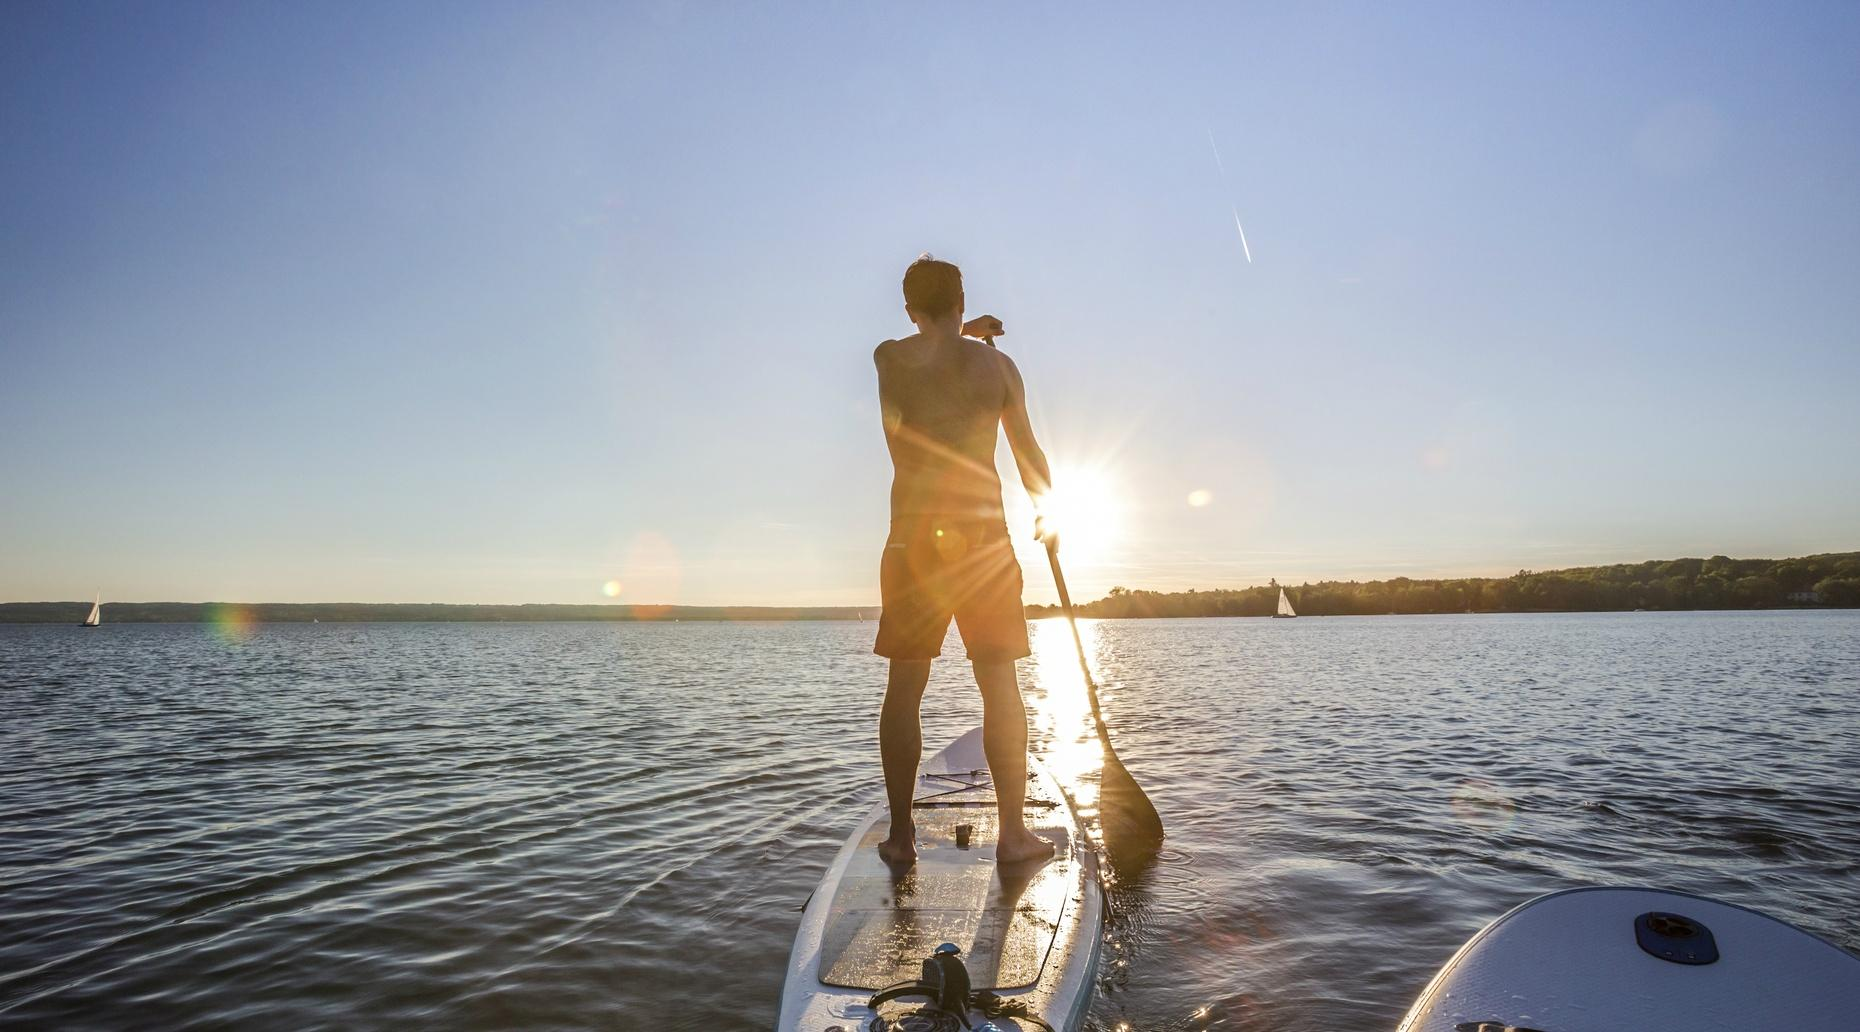 Stand-Up Paddle Board Trip in Mexico City